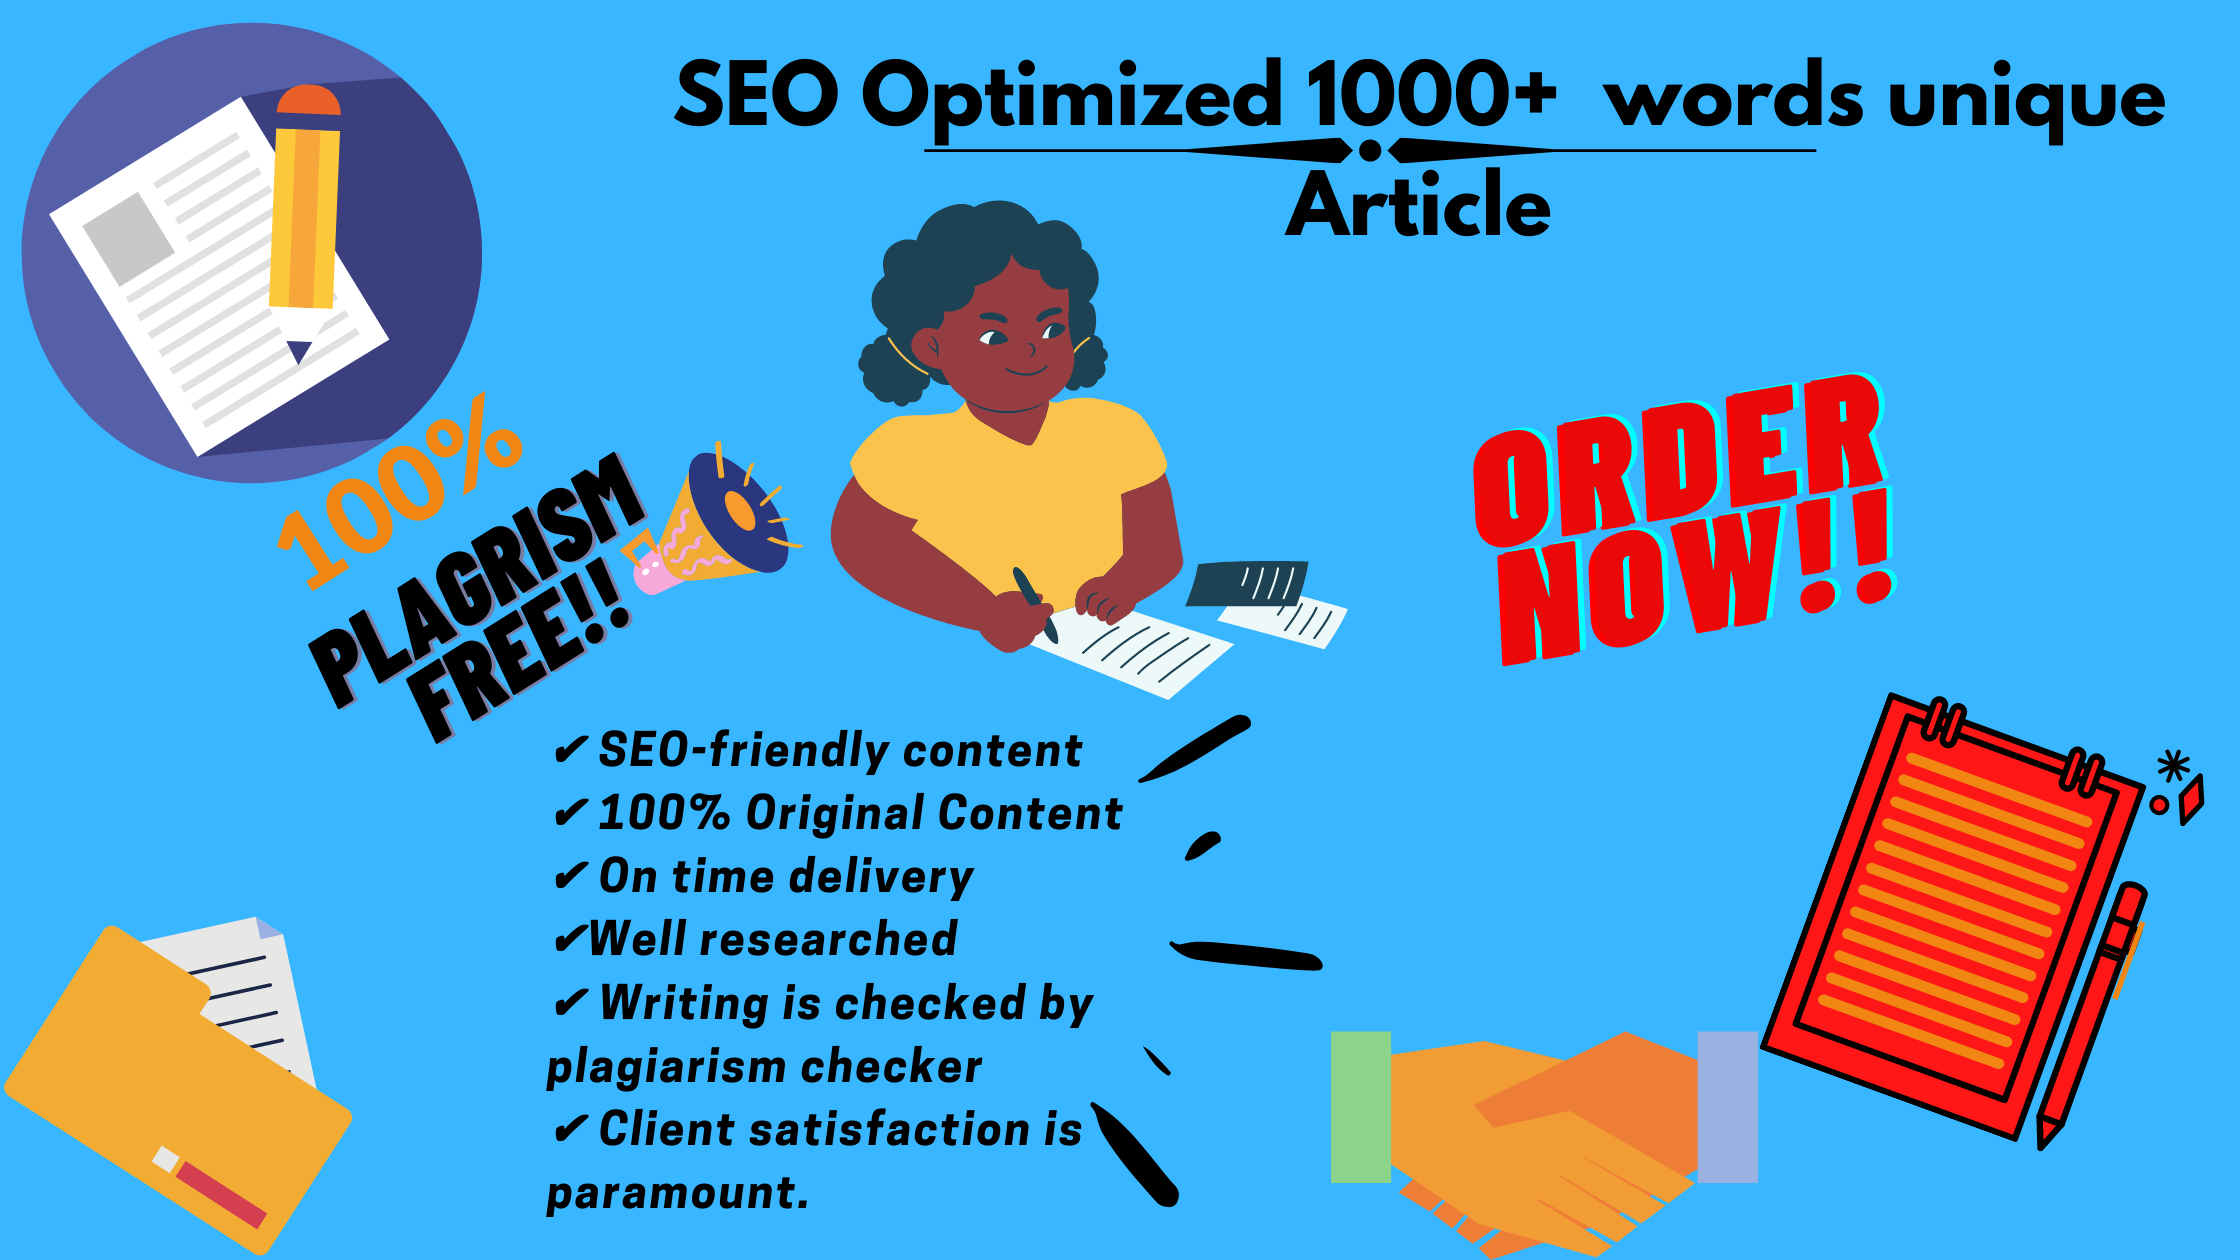 I will write 1000+ words SEO article blog post for you